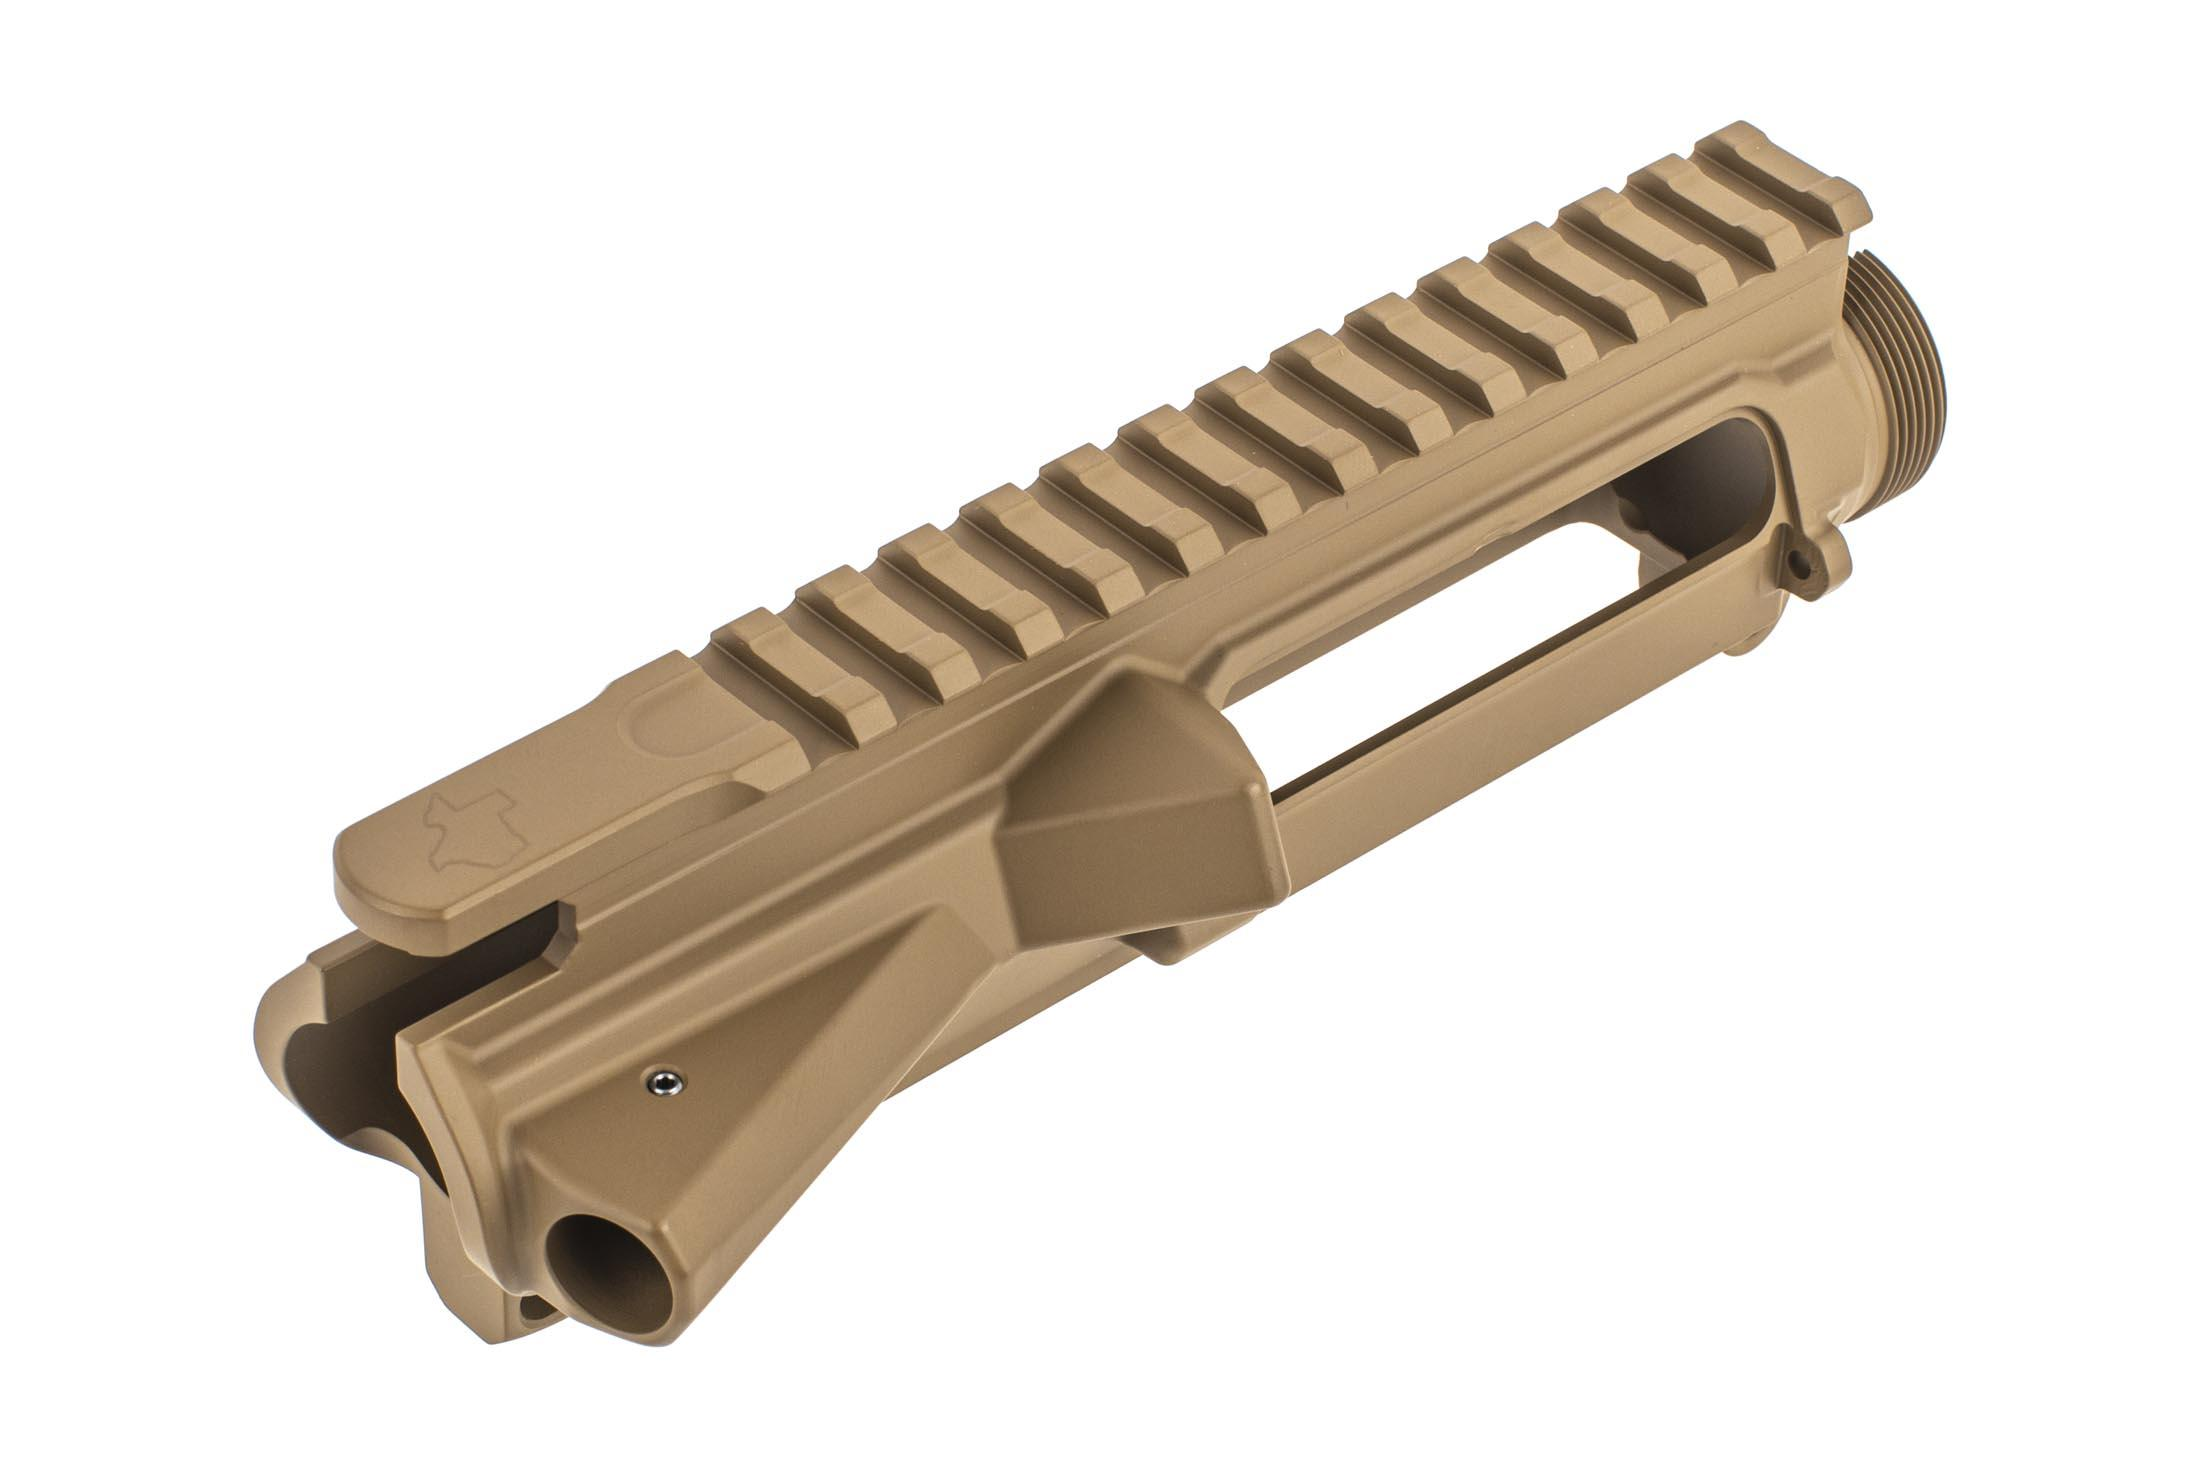 Aero Precision Texas Edition M4E1 threaded stripped upper in FDE features a threaded forward assist retaining pin